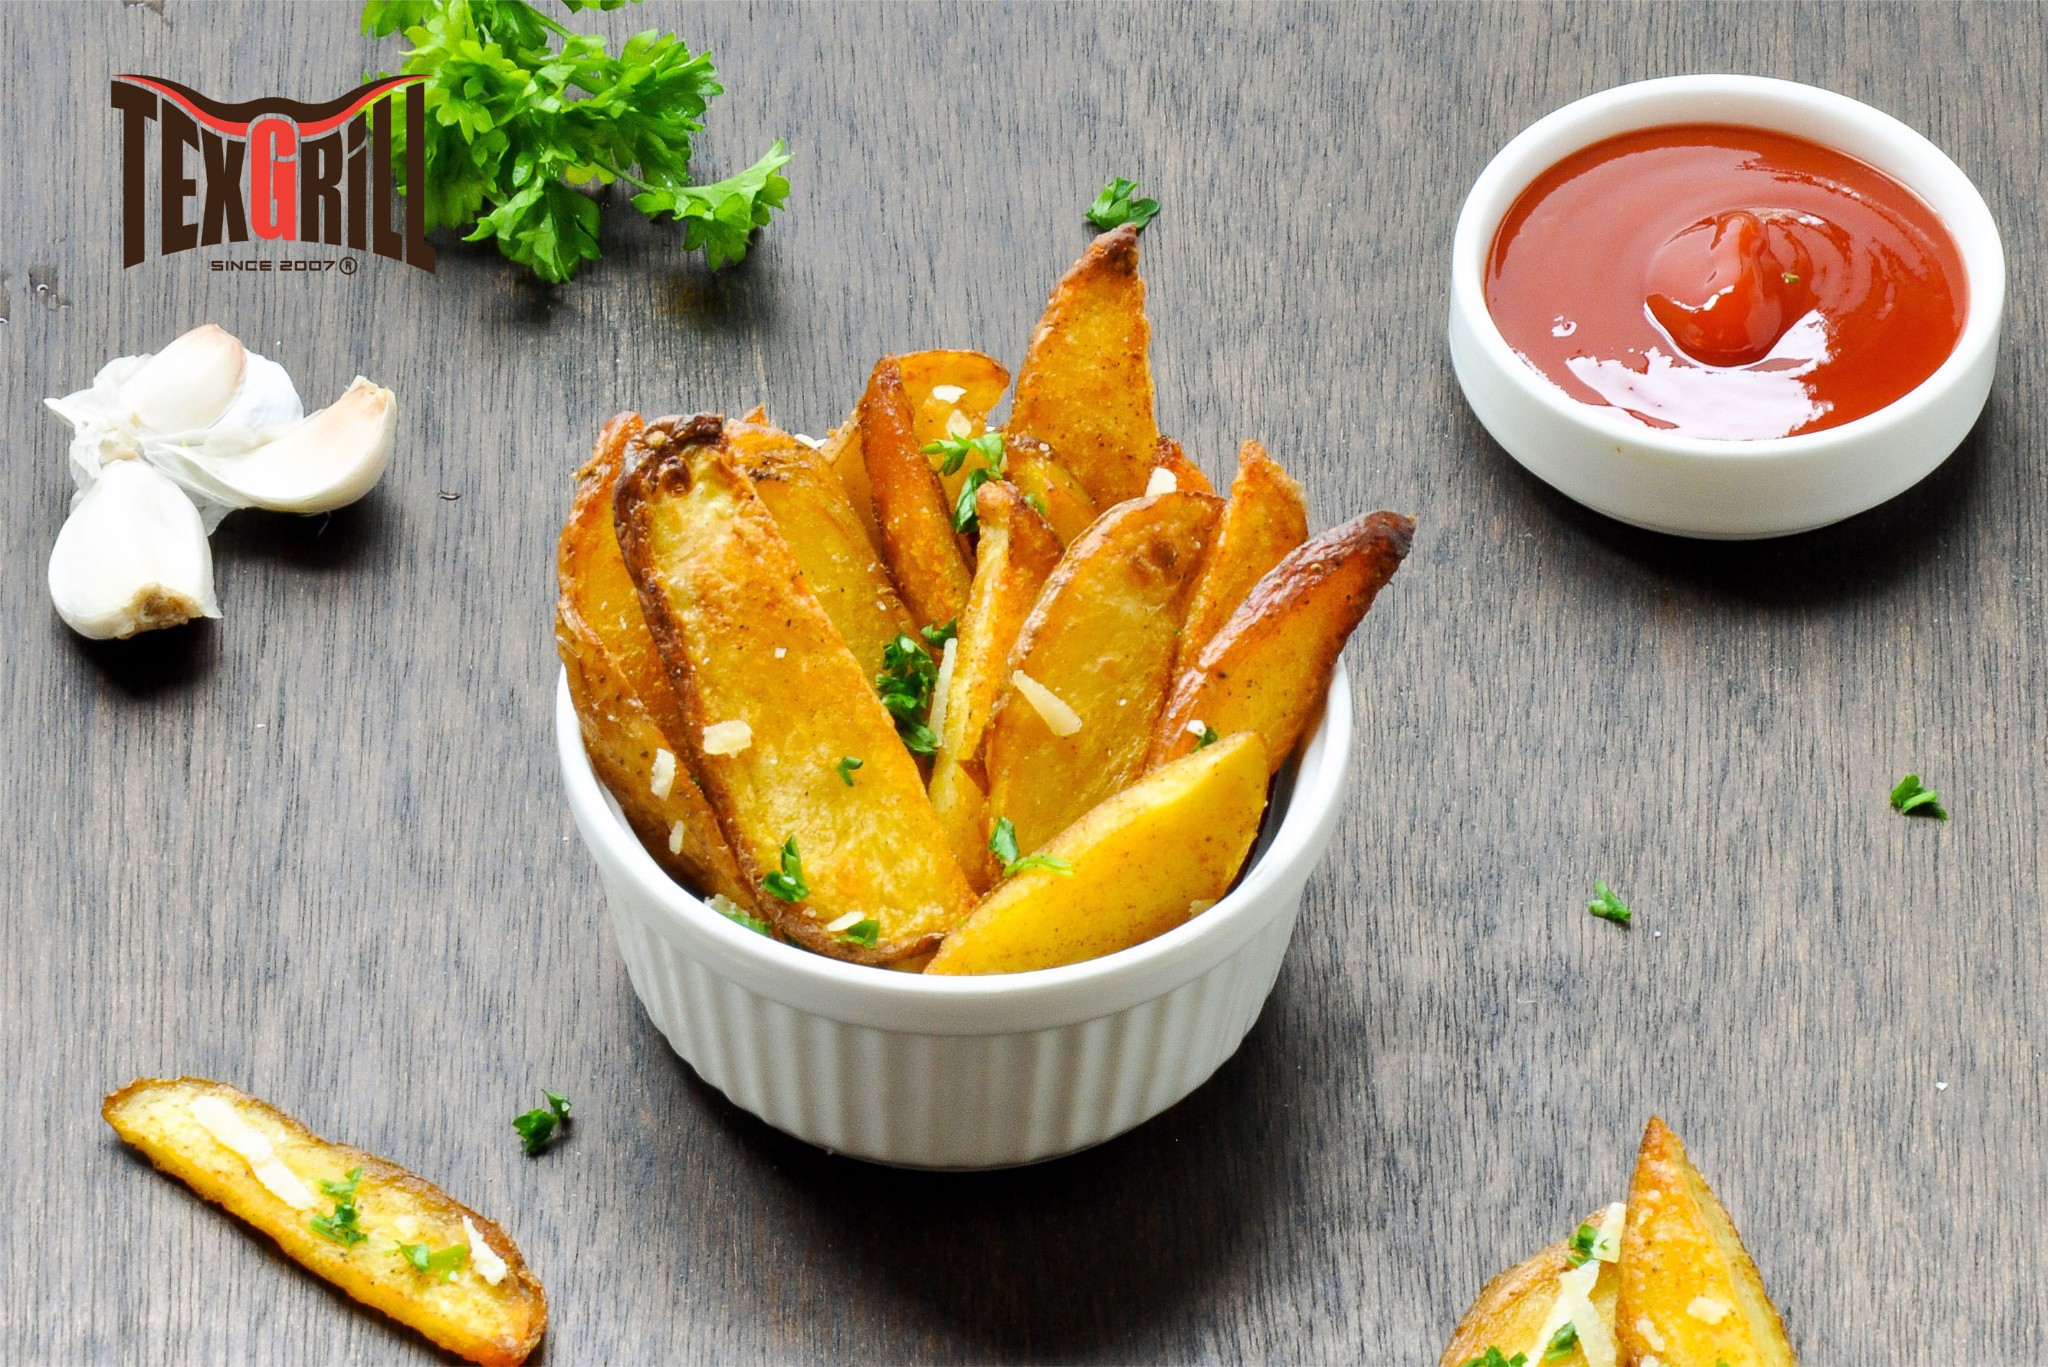 Potato Wedges or French Fries